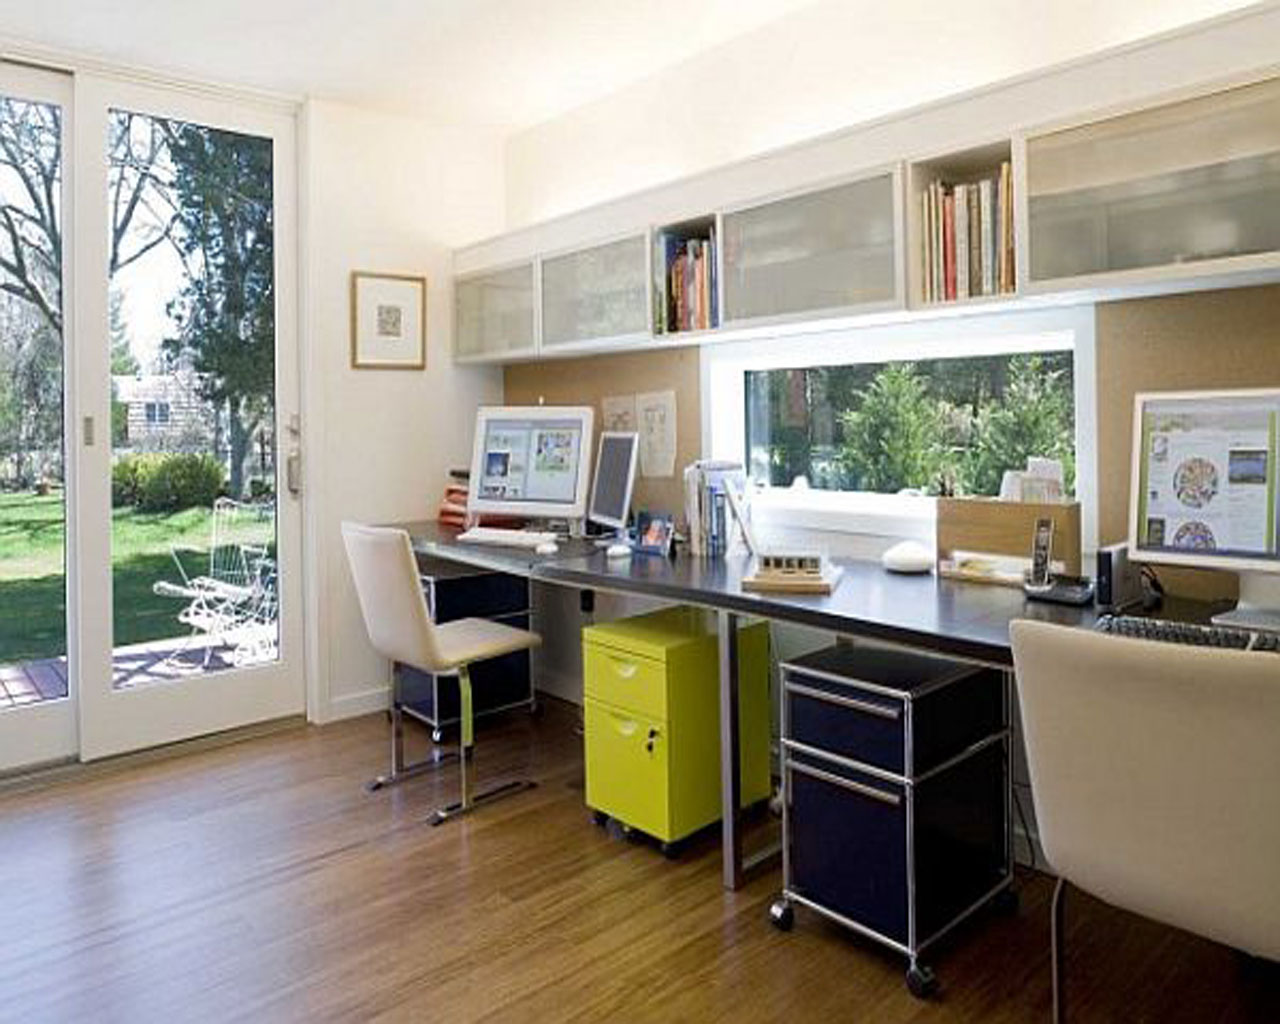 at home office ideas. Simple Double Desks Of Home Office Ideas With Shelves And Hardwood Floor At